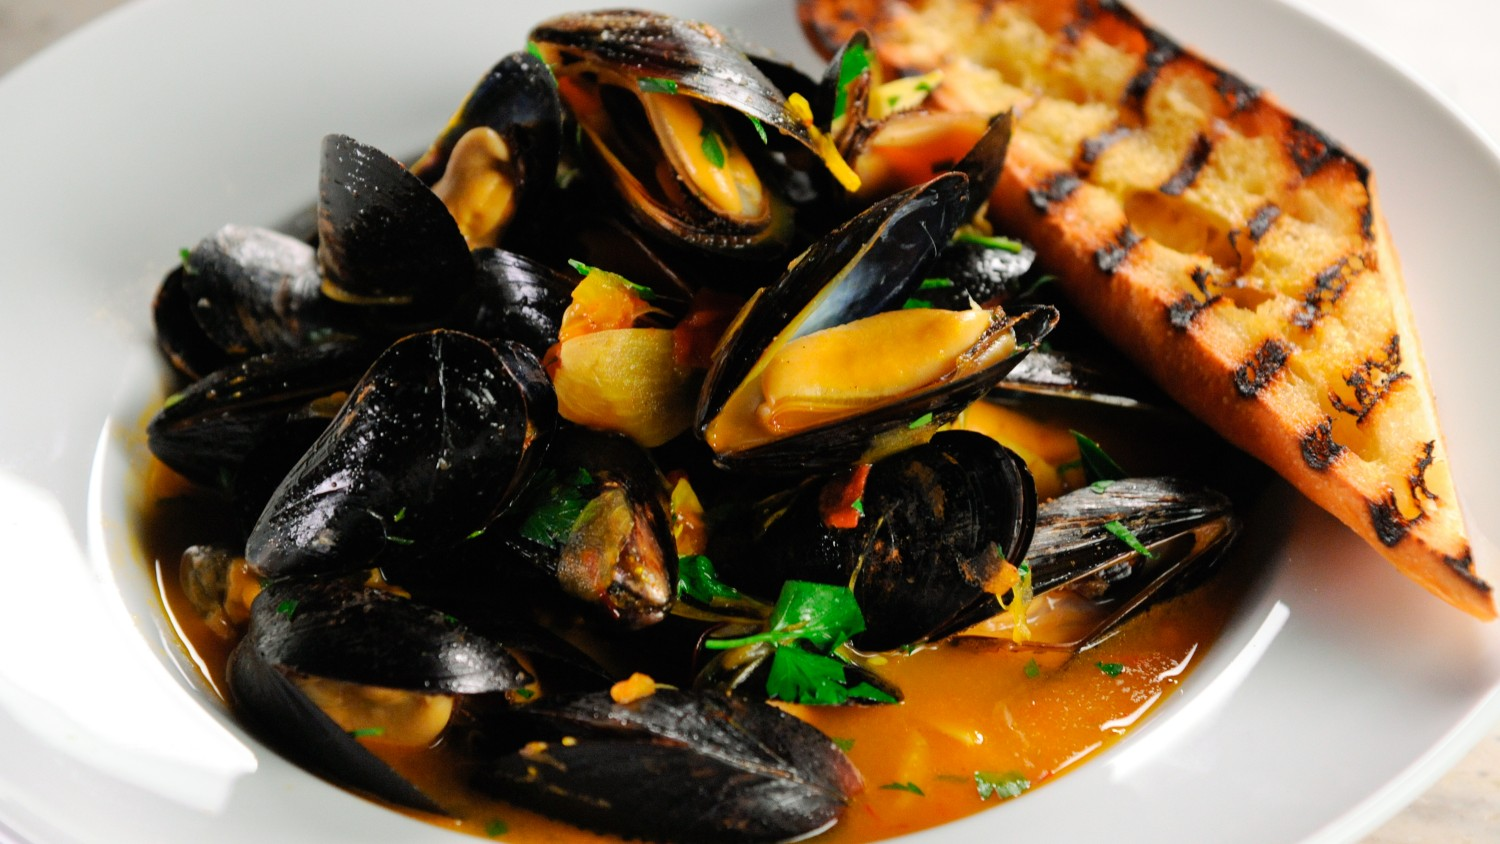 steamed-mussels-with-wine-and-saffron-mscs108_horiz.jpg